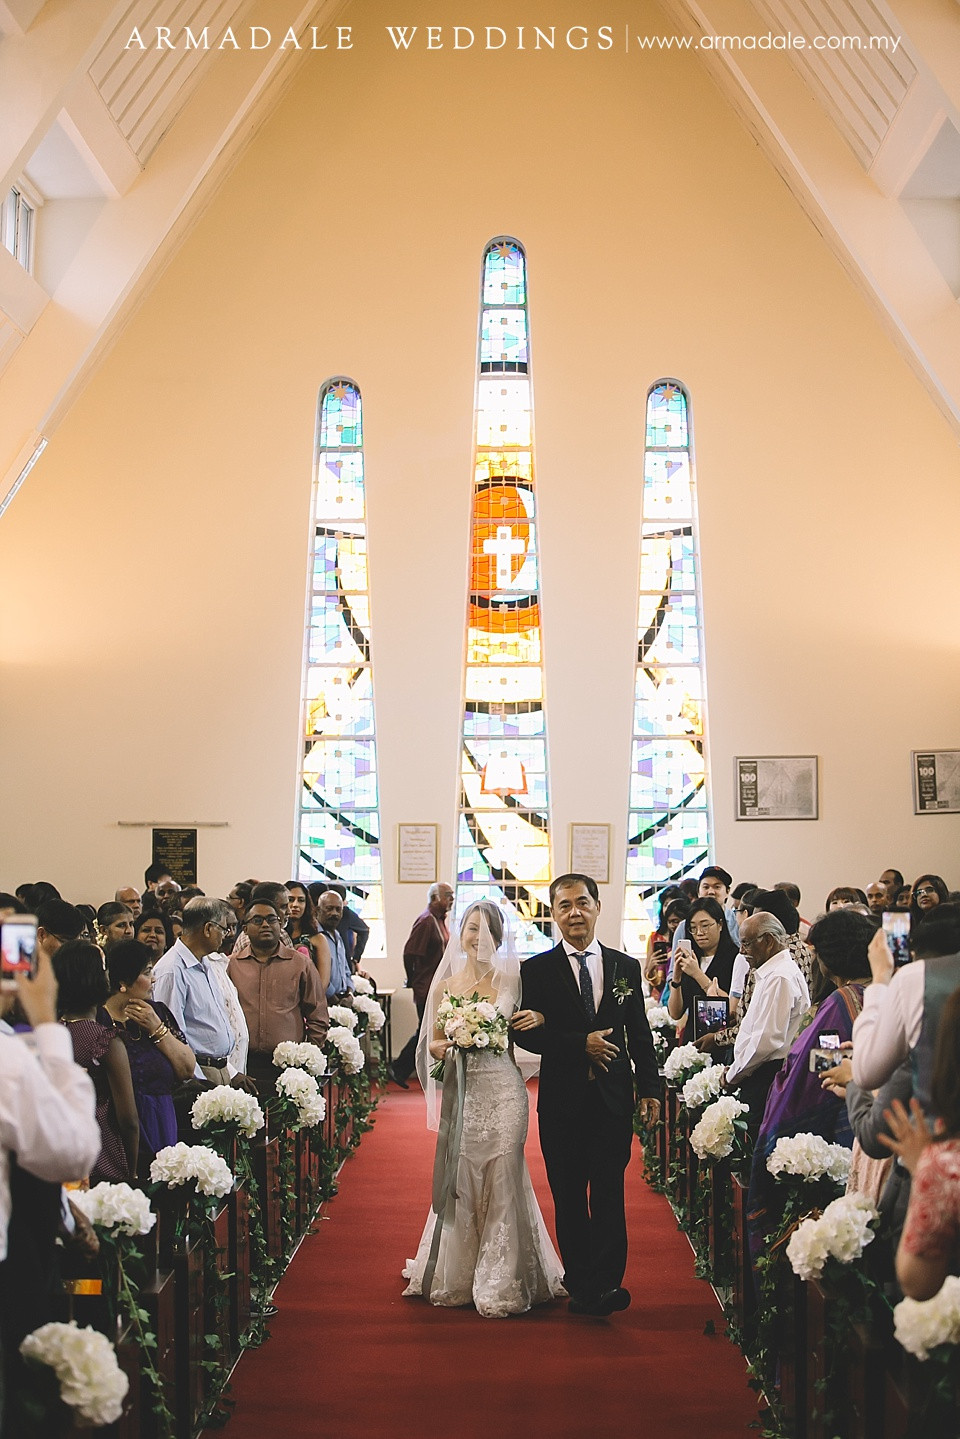 Church wedding in Malaysia